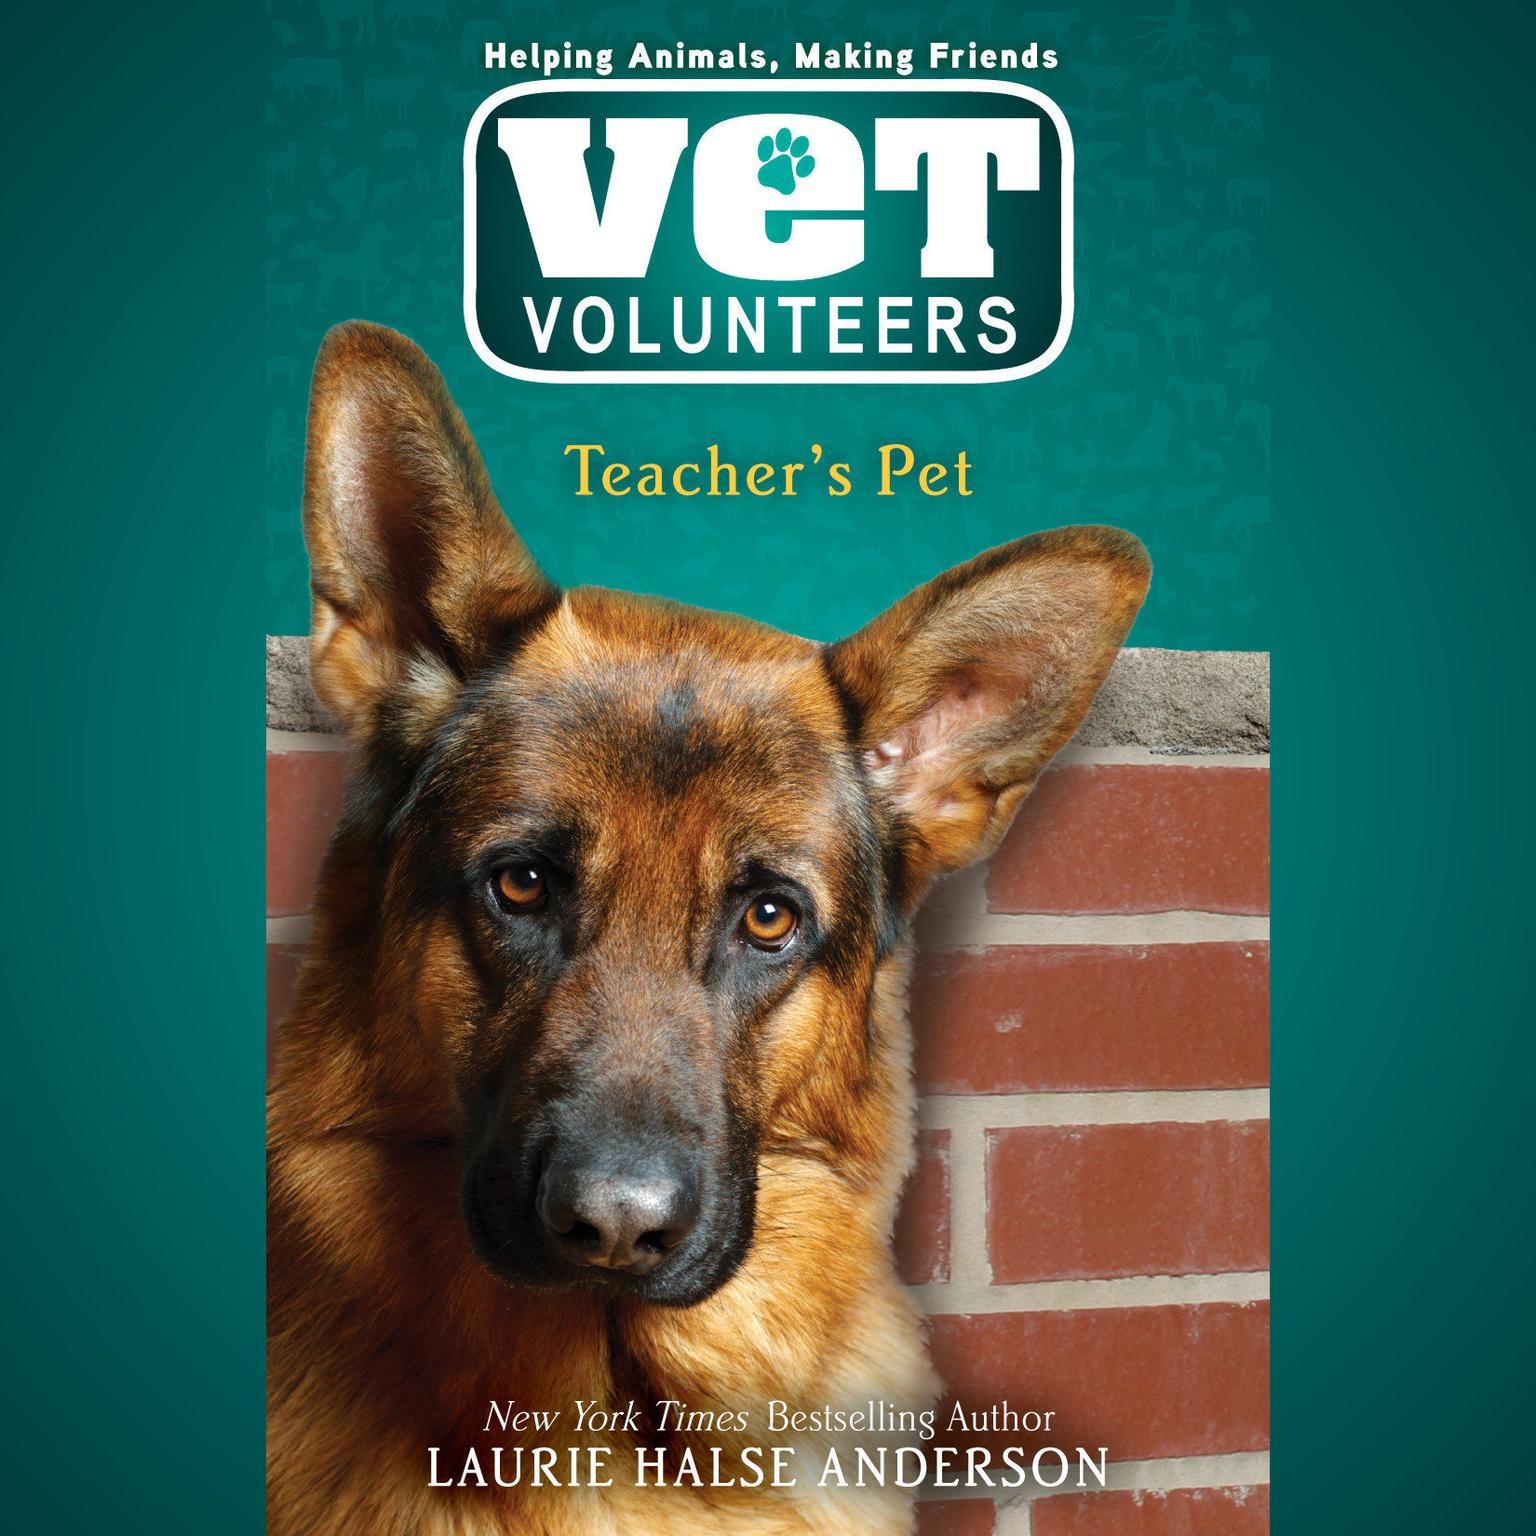 Printable Teacher's Pet #7 Audiobook Cover Art